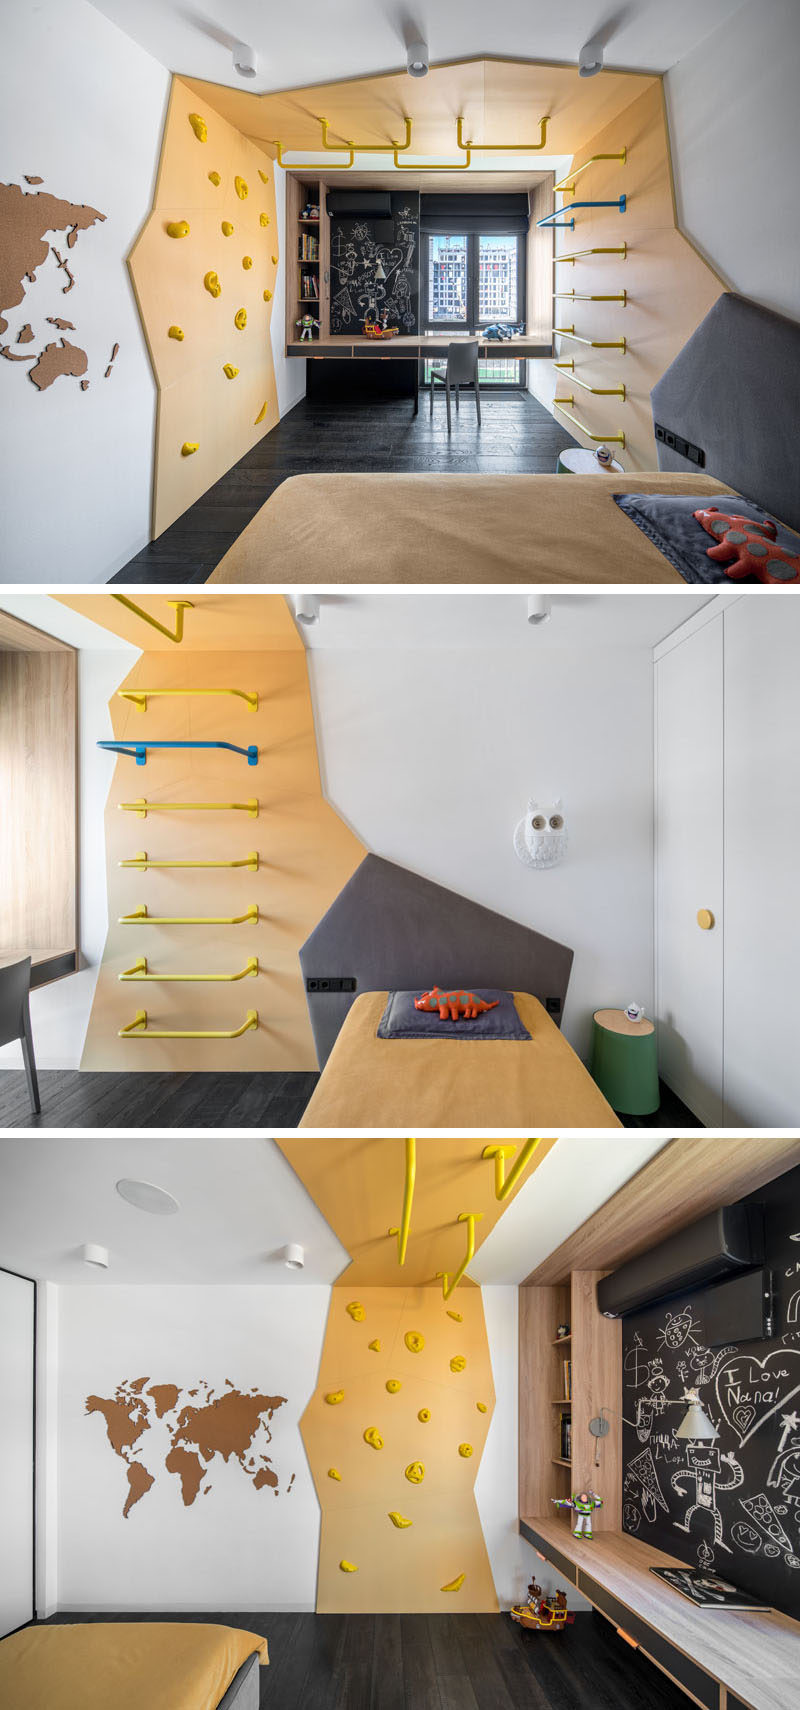 This modern kids bedroom has a custom climbing feature that wraps from one side of the room to the other, and separates the sleeping area from a desk by the window. #ModernKidsBedroom #ClimbingWall #KidsRoom #BedroomDesign